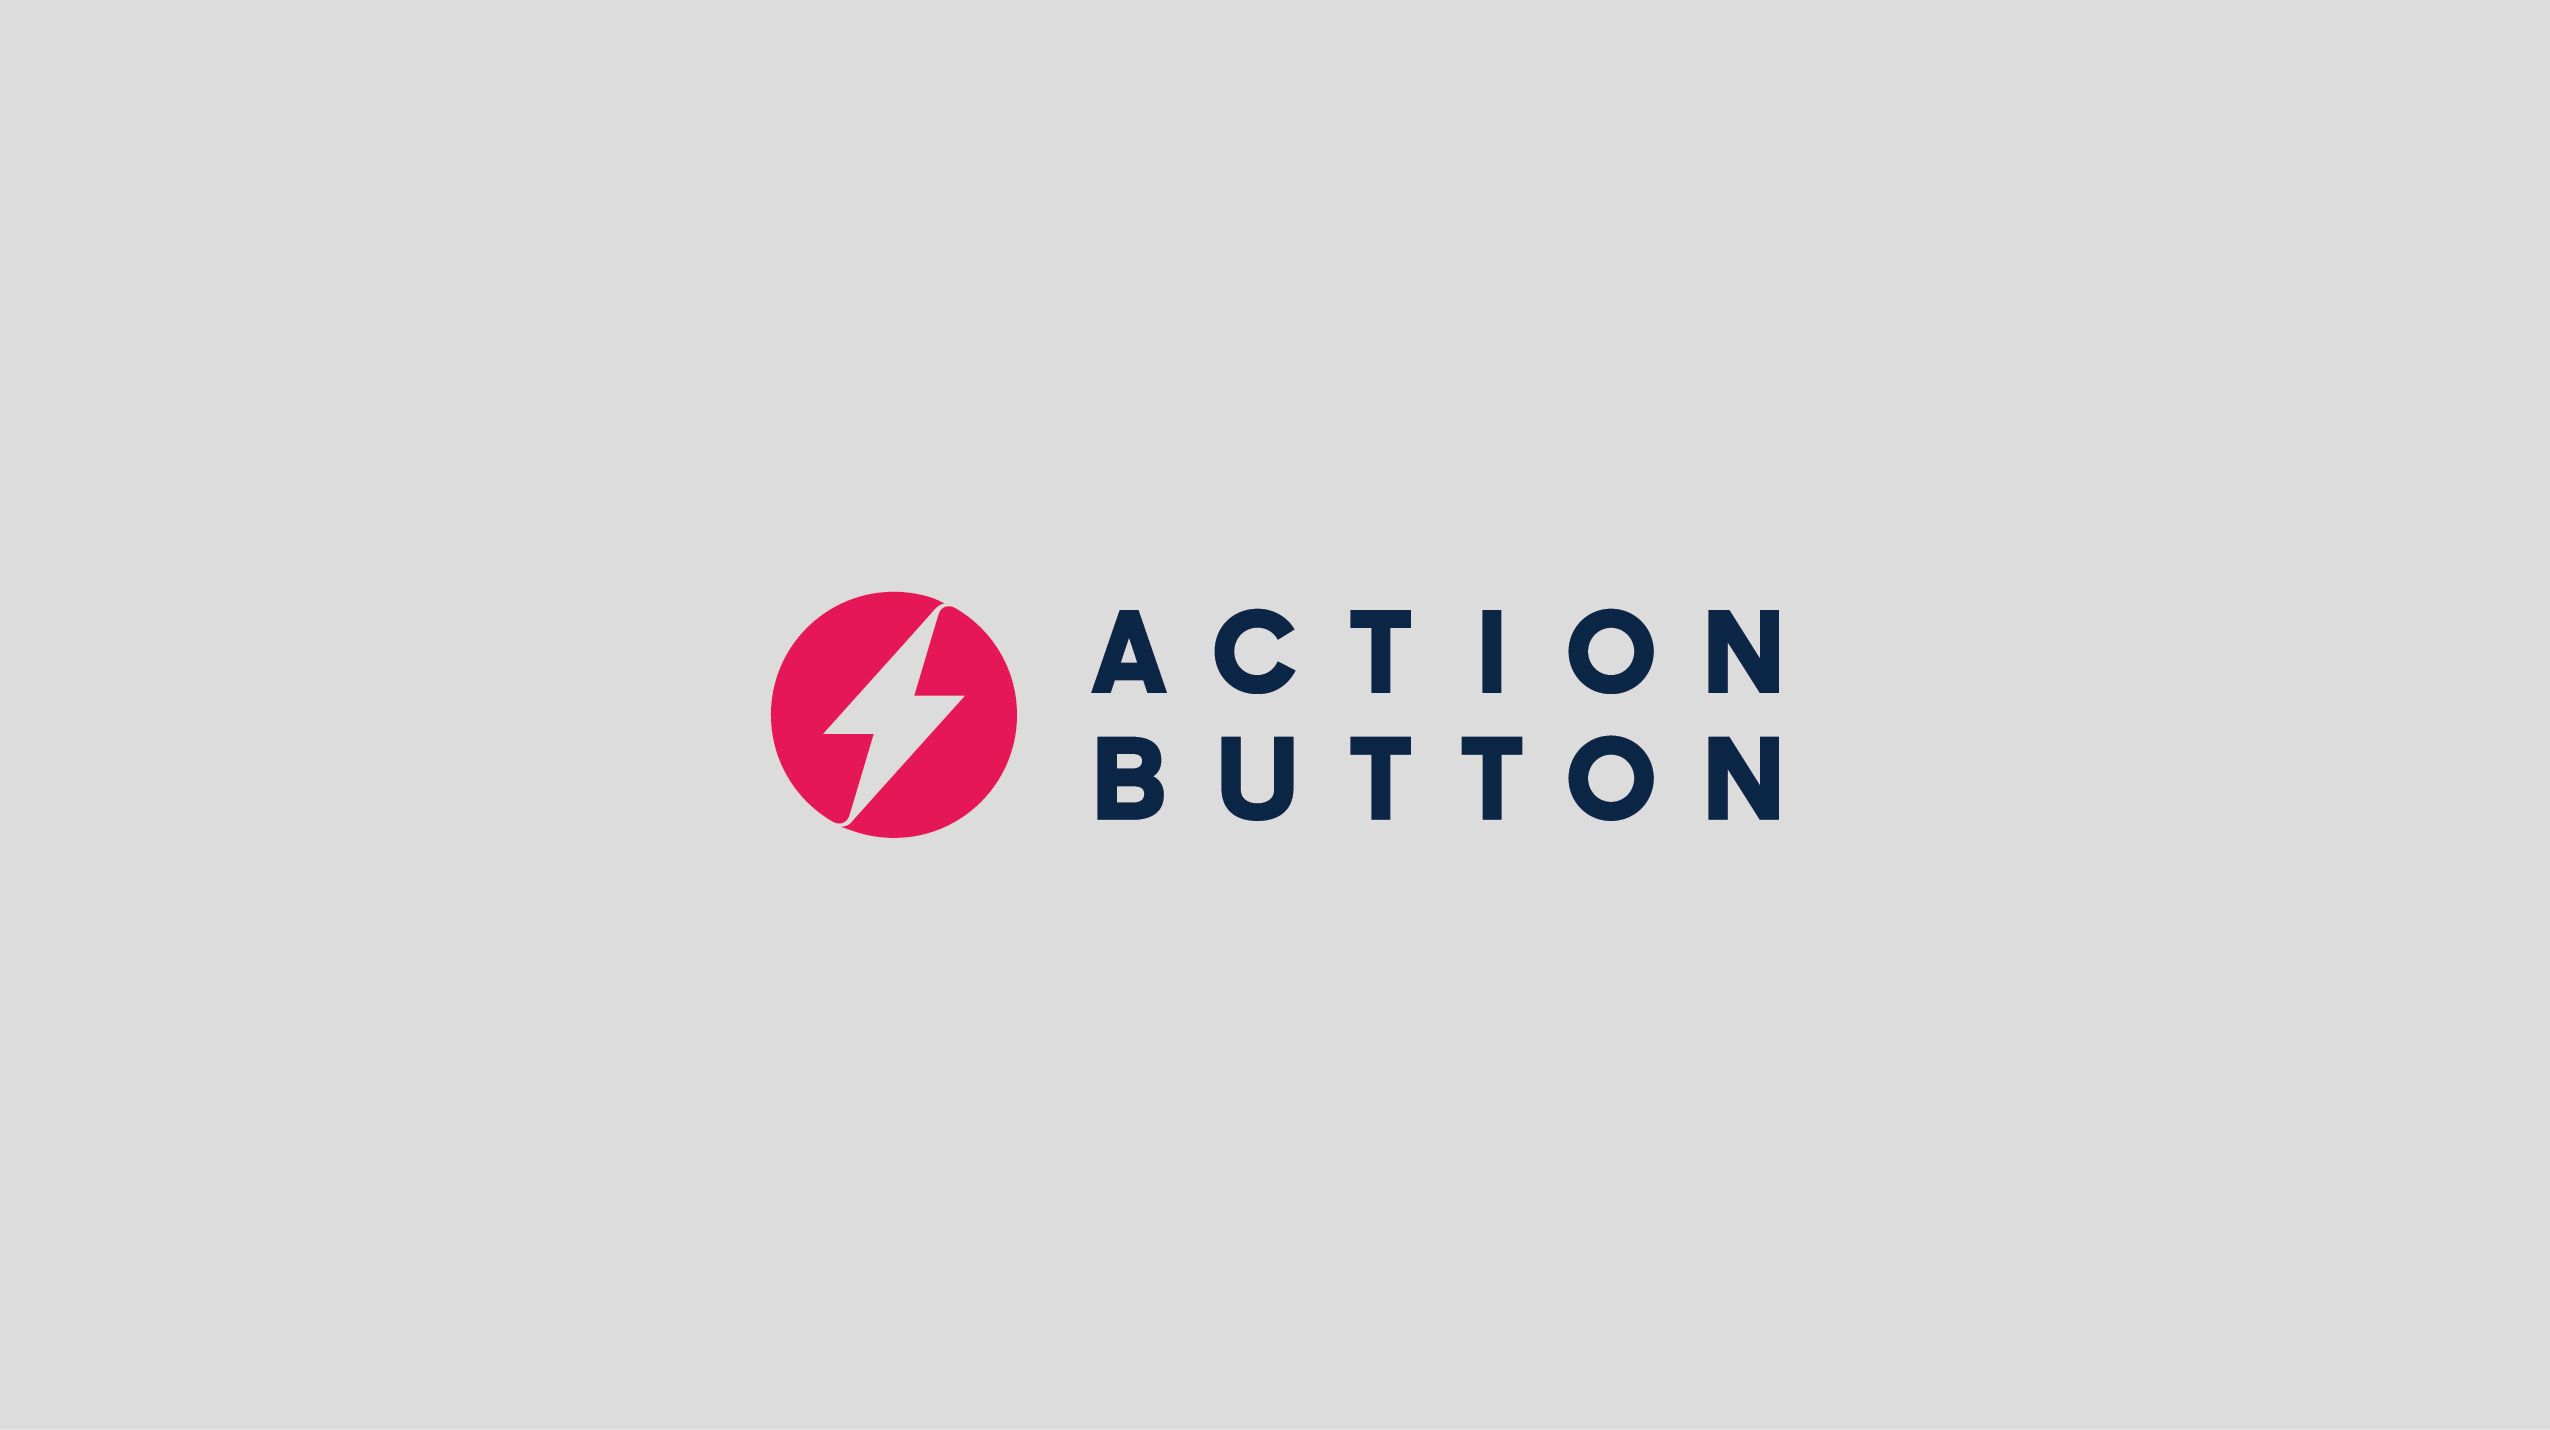 Action button logotype lockup